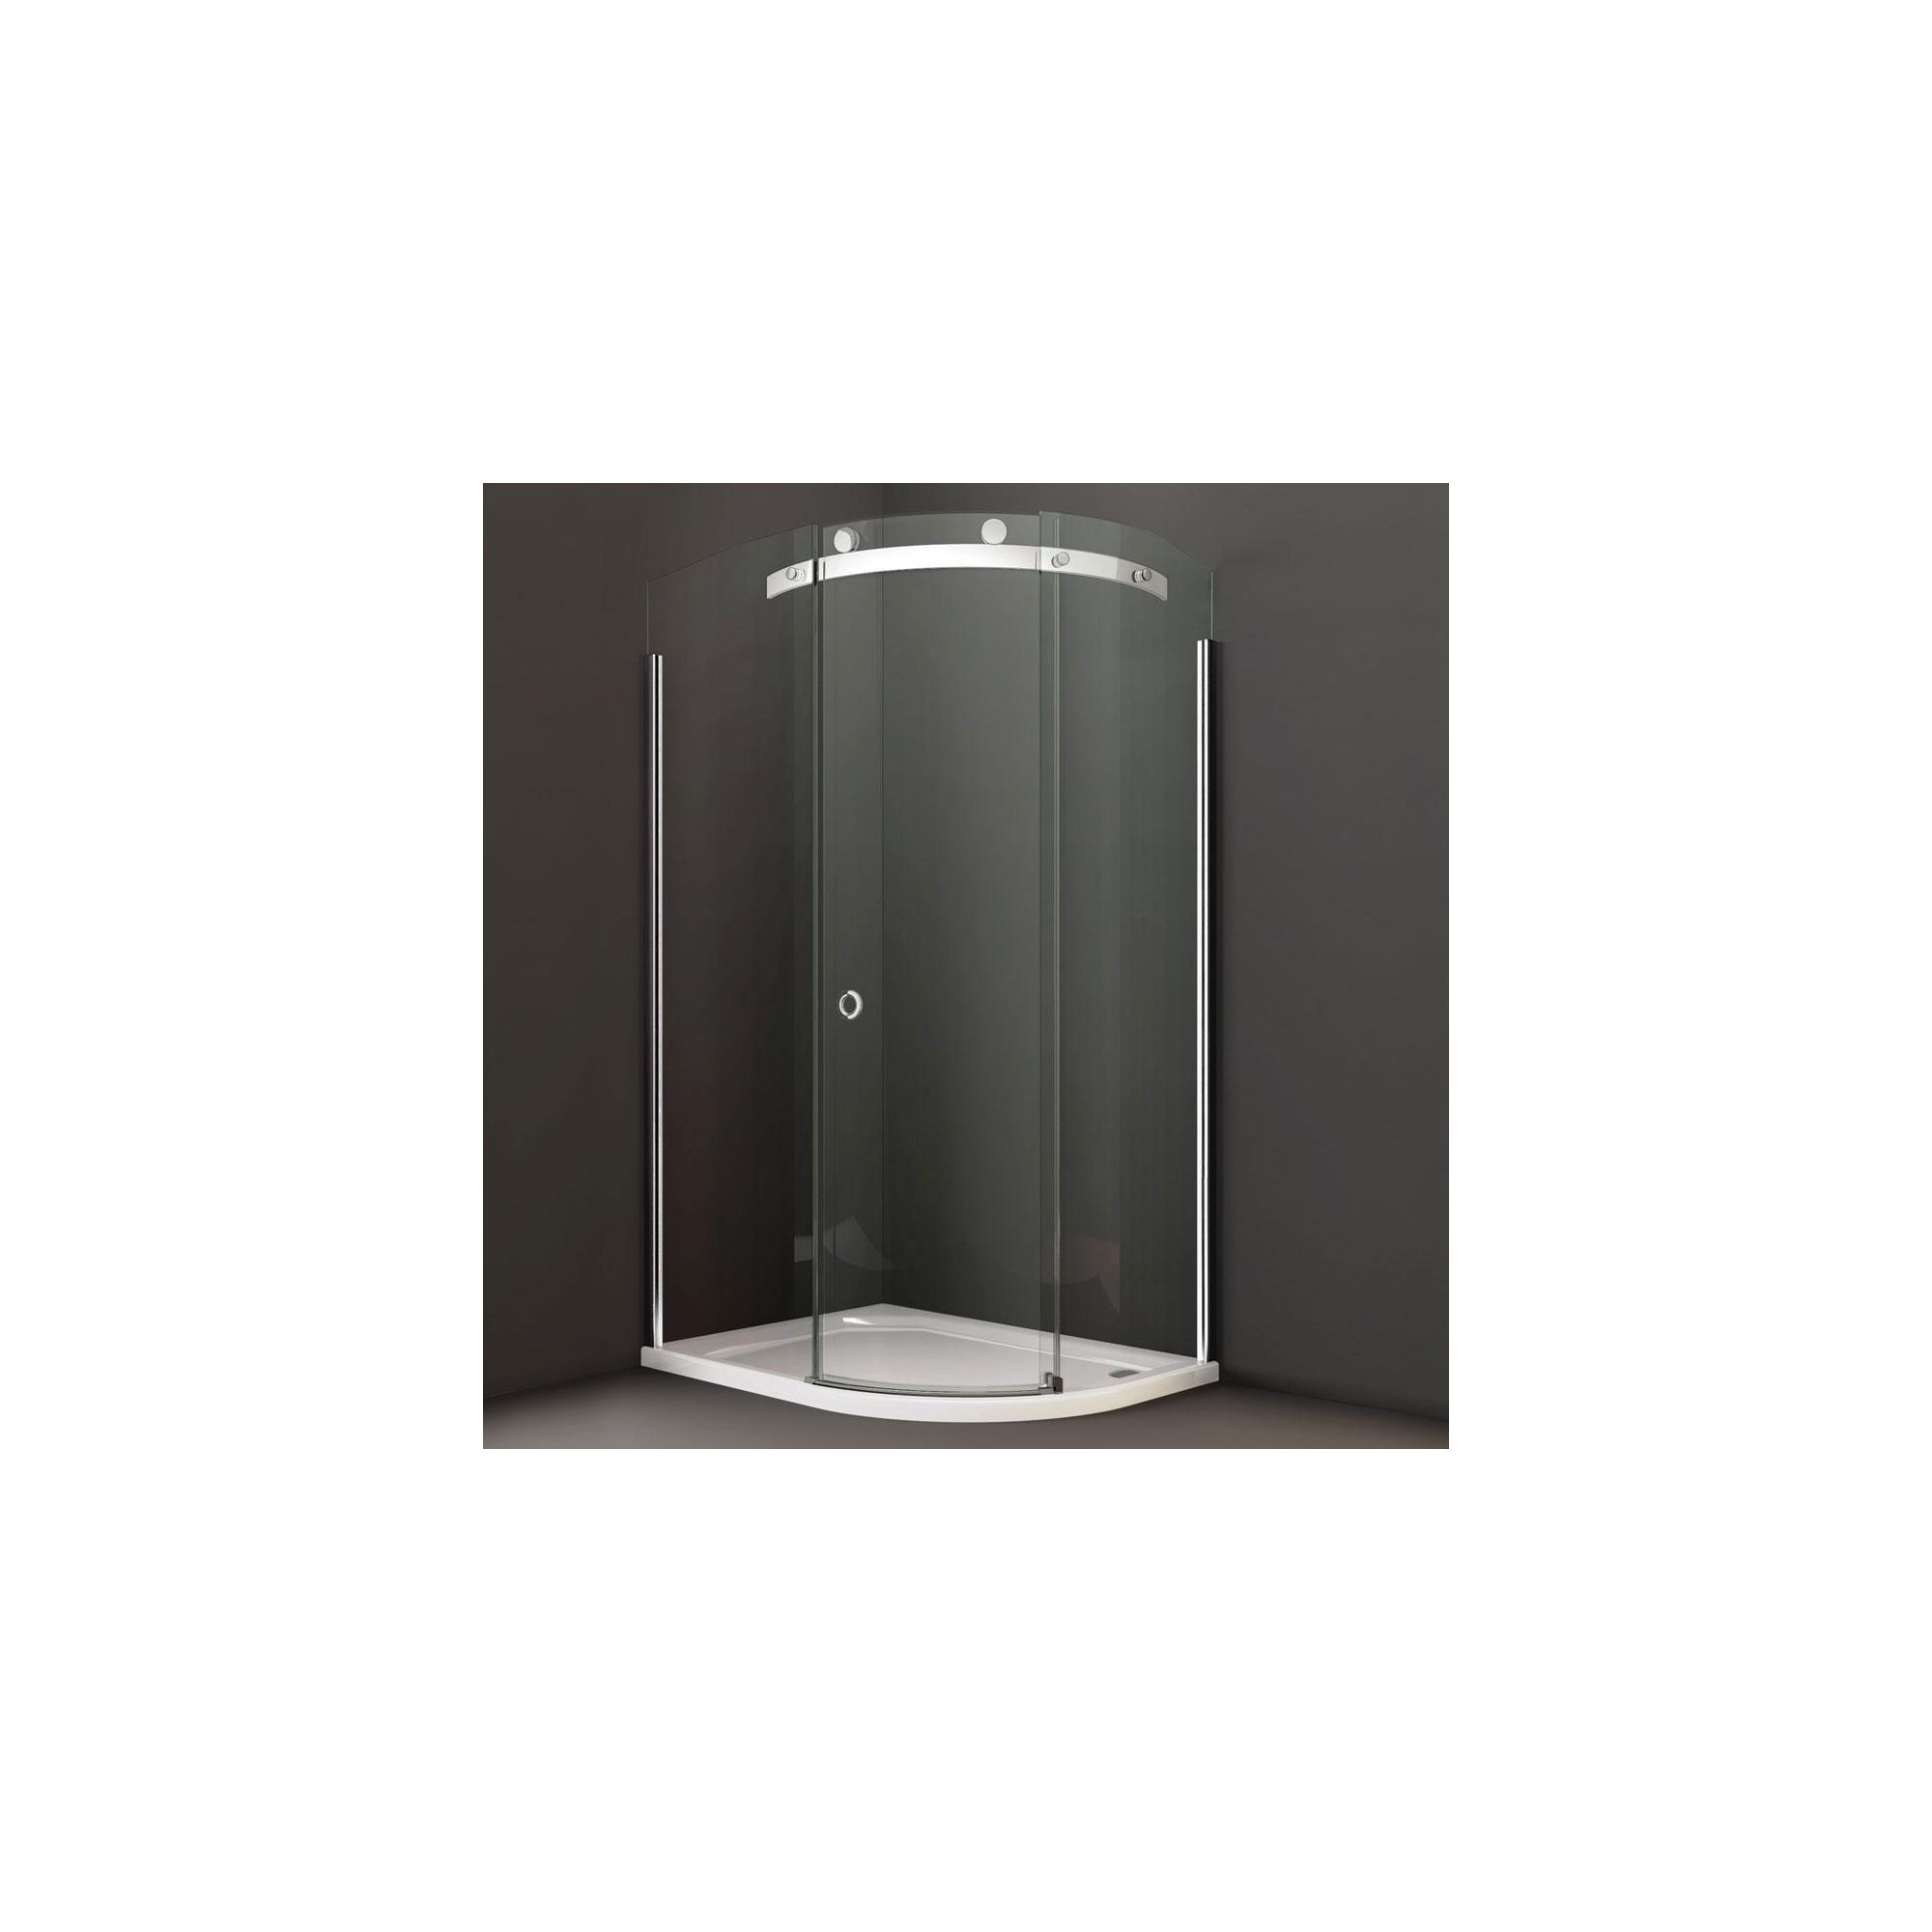 Merlyn Series 10 Offset Quadrant Shower Door, 1200mm x 800mm, 10mm Clear Glass, Right Handed at Tesco Direct